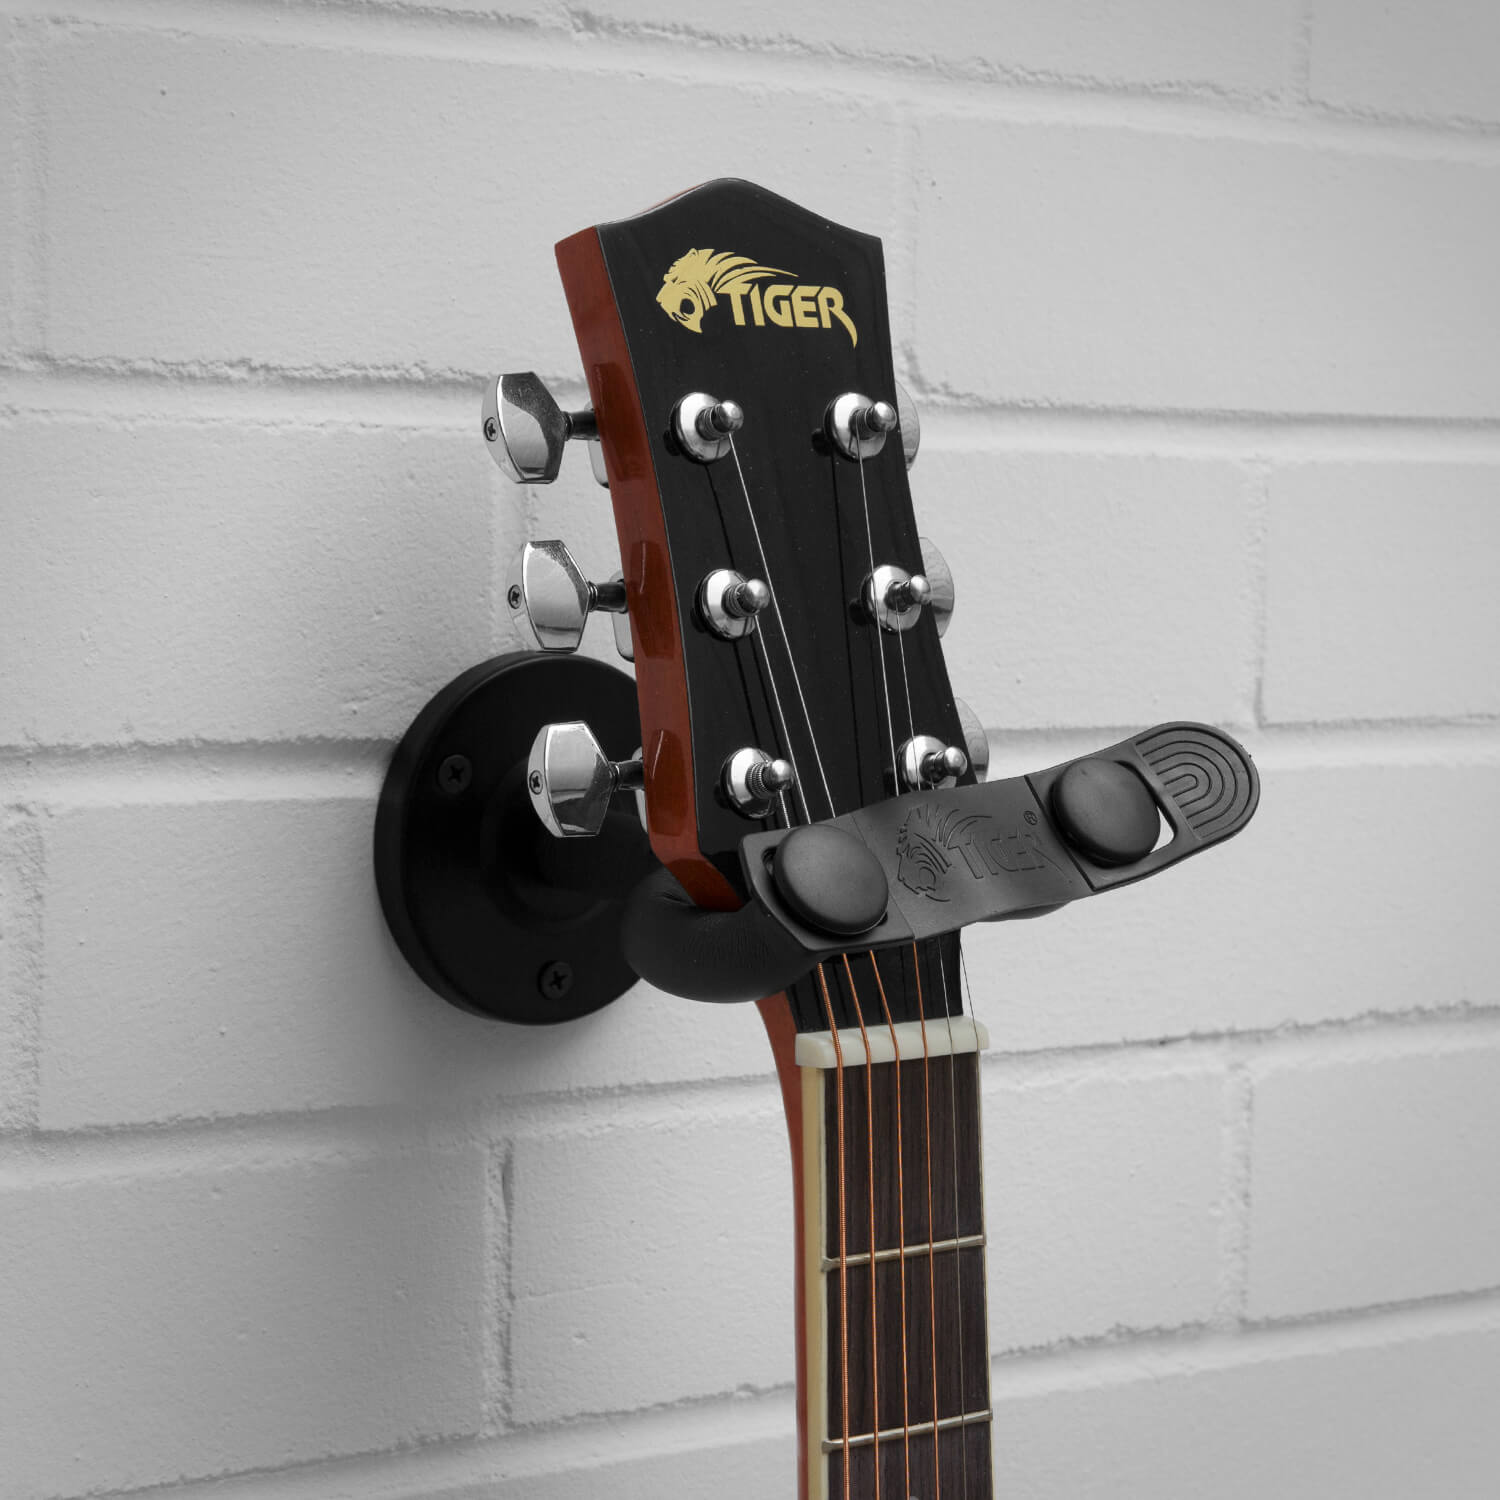 Tiger Guitar Wall Hanger - 3 Pack - Electric/Acoustic/Classical/Bass - 6